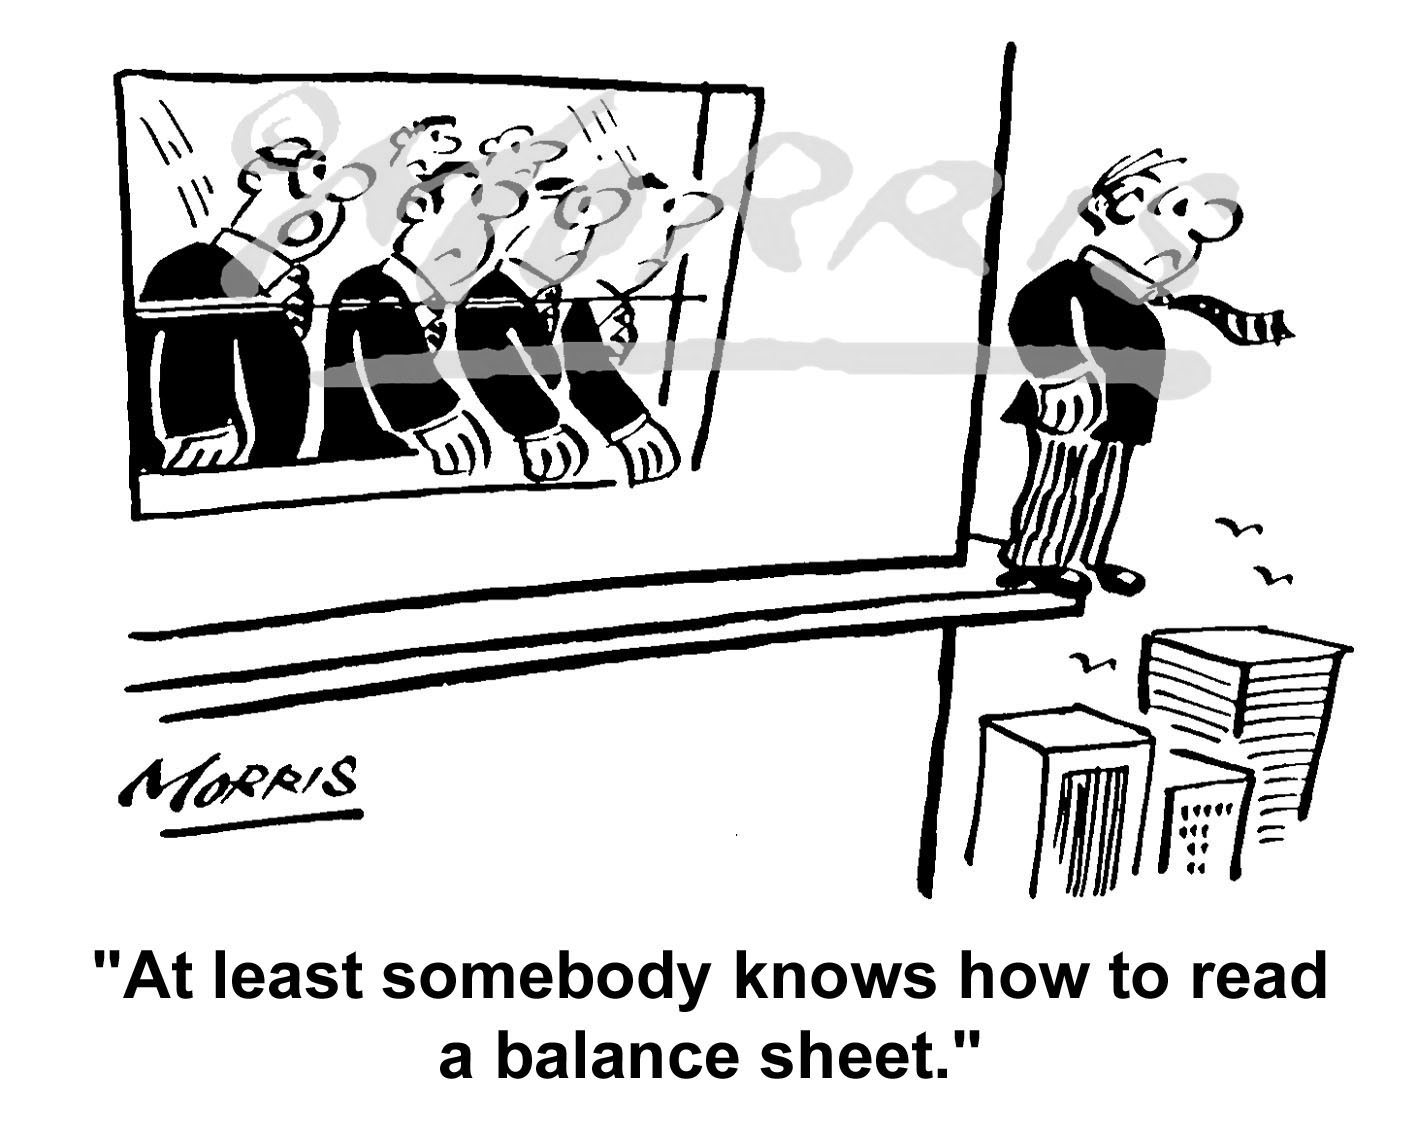 Company balance sheet cartoon Ref: 1632bw